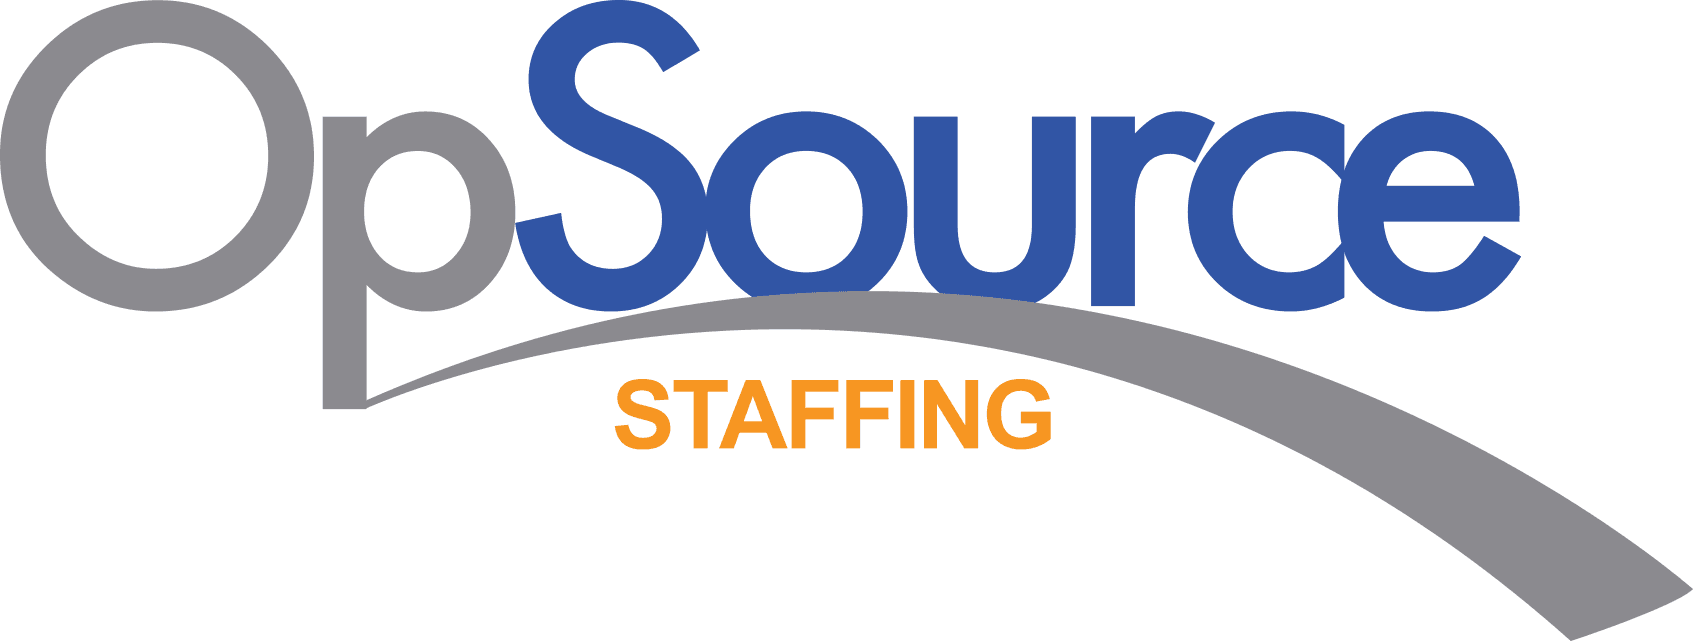 Opsource simplifying staffing and hr for Unique home solutions job review